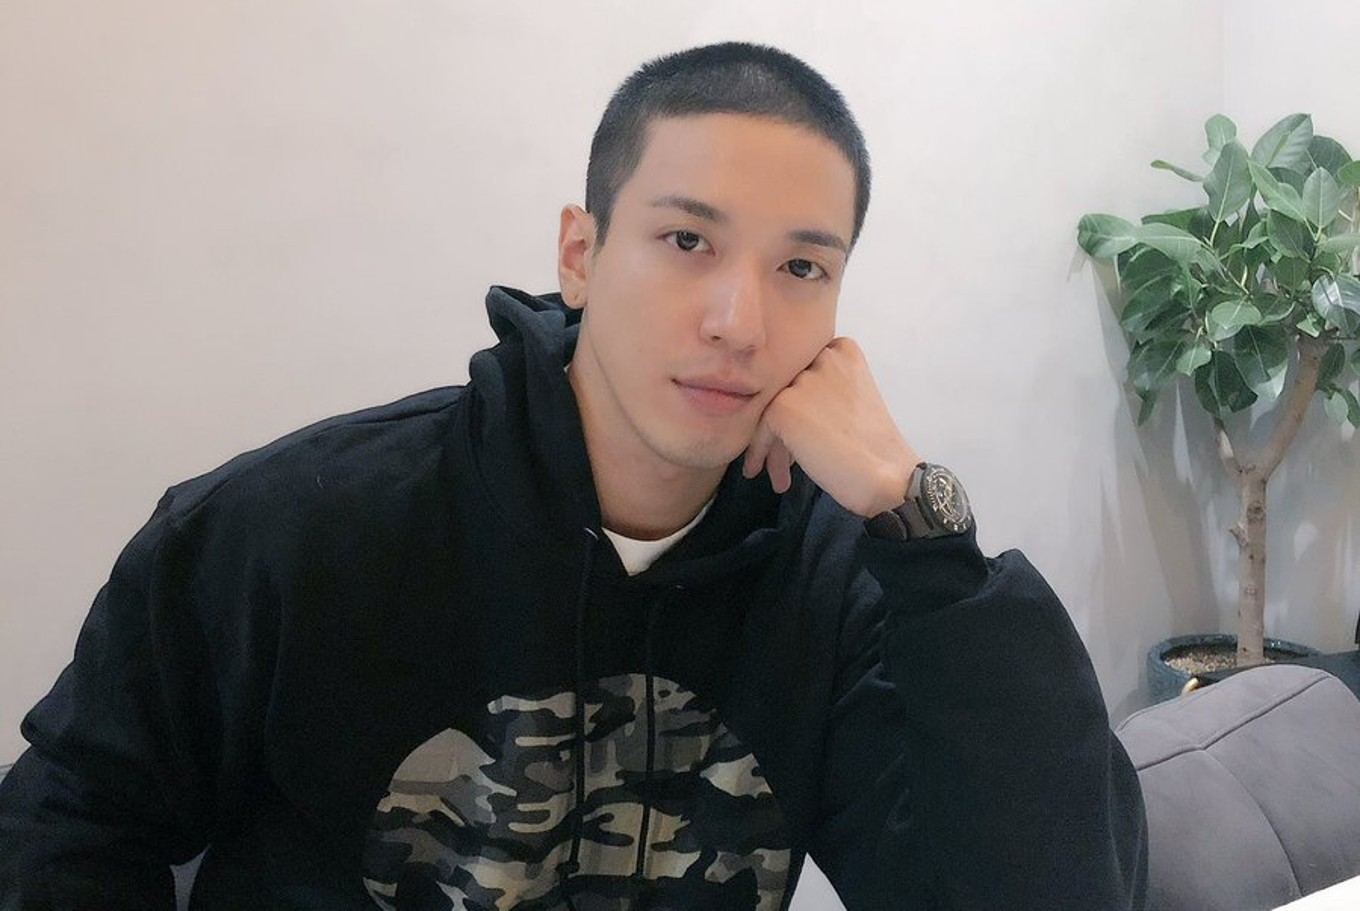 Embattled Jung Yong-hwa joins military - Entertainment - The